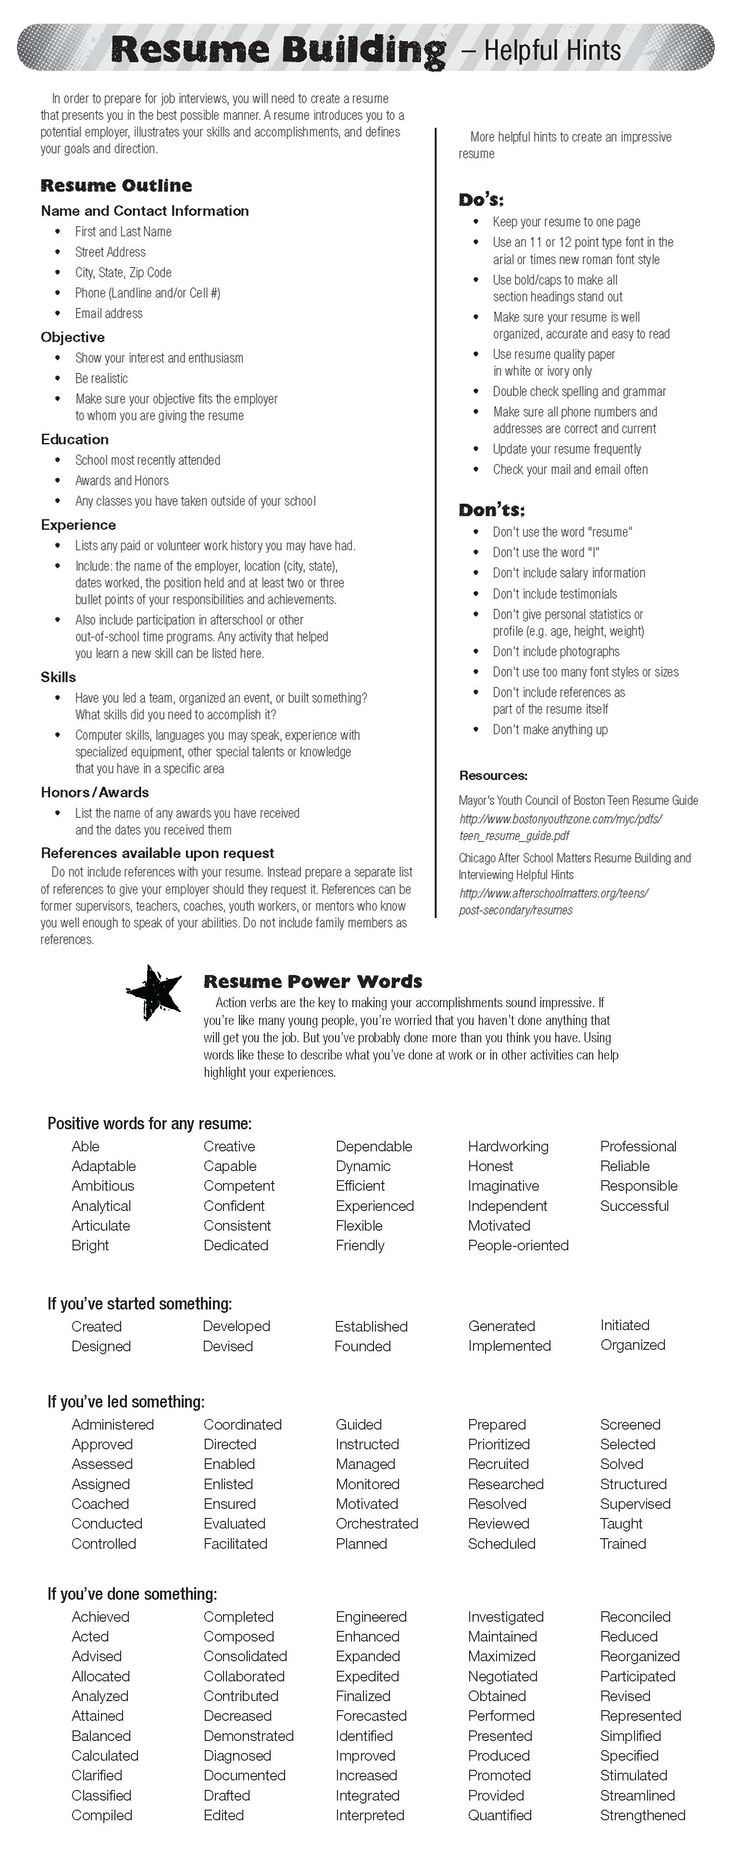 Opposenewapstandardsus  Ravishing  Ideas About Resume On Pinterest  Cv Format Resume Cv And  With Outstanding  Ideas About Resume On Pinterest  Cv Format Resume Cv And Resume Templates With Enchanting Real Estate Resume Also Resume Builder For Free In Addition Child Care Resume And Resumate As Well As Blank Resume Additionally Example Of A Good Resume From Pinterestcom With Opposenewapstandardsus  Outstanding  Ideas About Resume On Pinterest  Cv Format Resume Cv And  With Enchanting  Ideas About Resume On Pinterest  Cv Format Resume Cv And Resume Templates And Ravishing Real Estate Resume Also Resume Builder For Free In Addition Child Care Resume From Pinterestcom